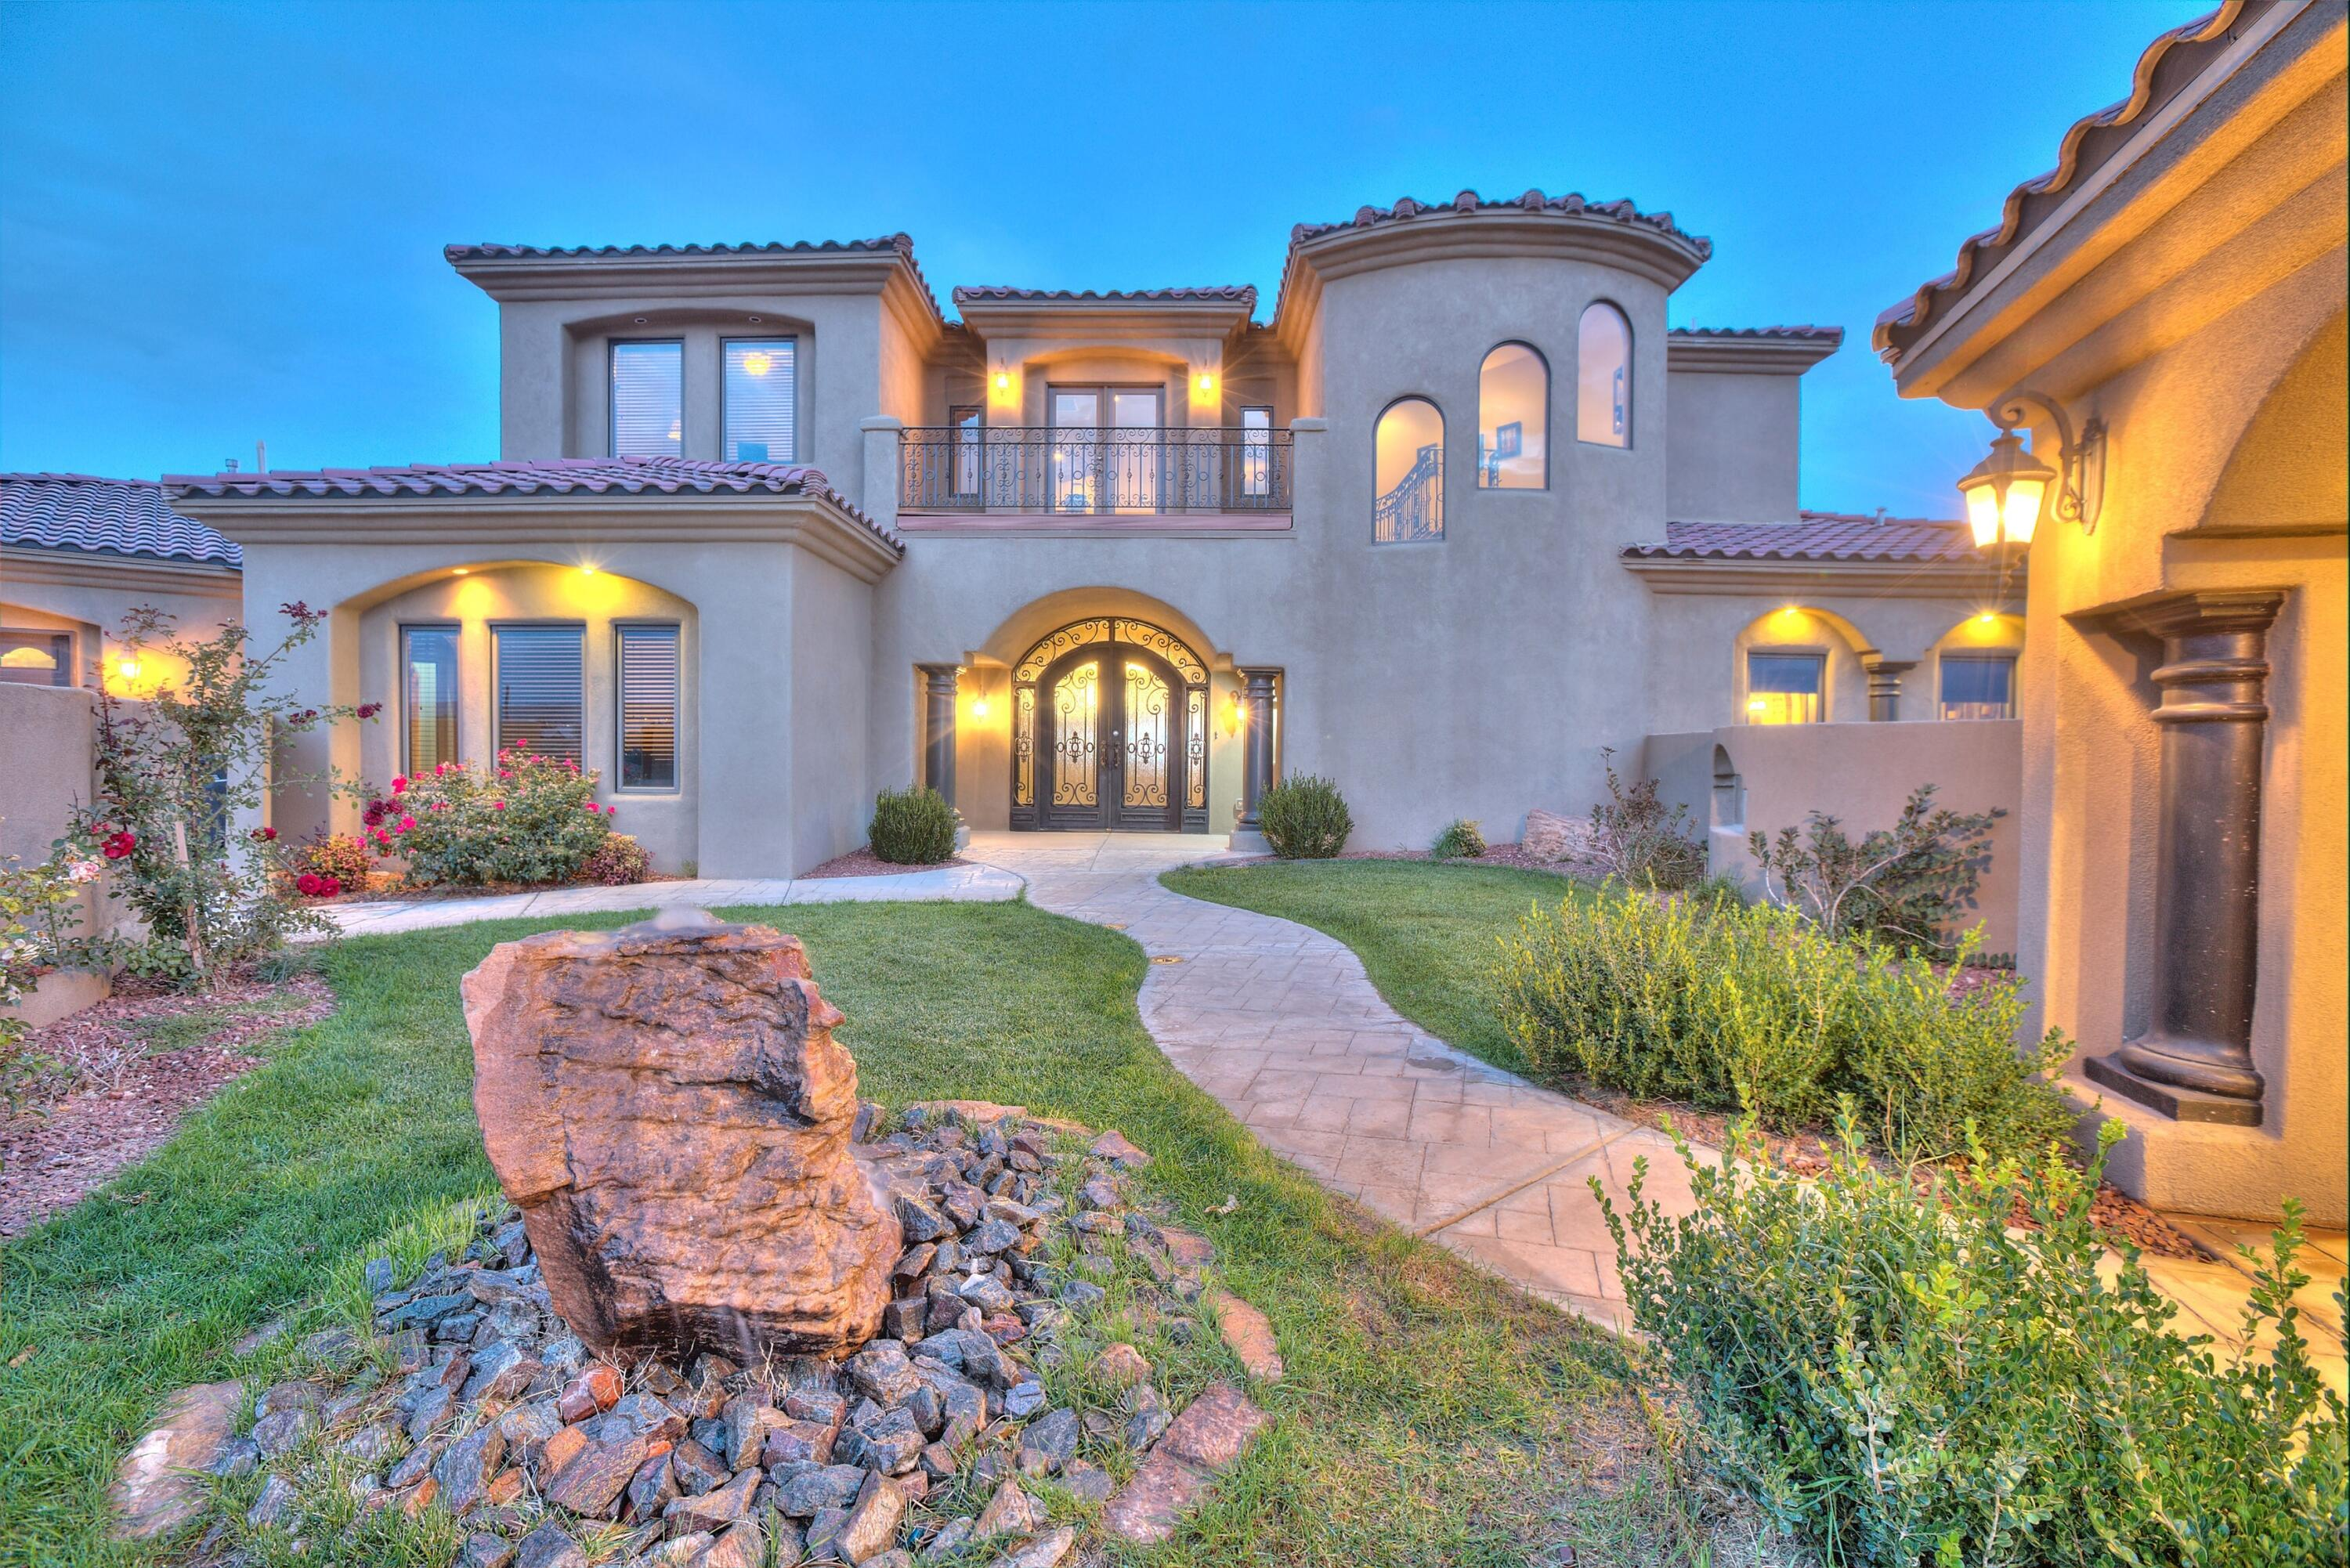 Luxurious 5000+sq.ft. custom home in the heart of the southwest with breathtaking unobstructed views of the city and mountains.  This gem is located on an impeccably manicured 1 acre lot.  Free-flowing indoor/outdoor living spaces provide attention to detail, harmonious with the surroundings.  Expansive rooms, arched ceiling and exquisite architectural appointments are perfectly designed & beautifully executed providing a sense of warmth & relaxed refinement.  This is a must see!  1200+sg.ft. garage.